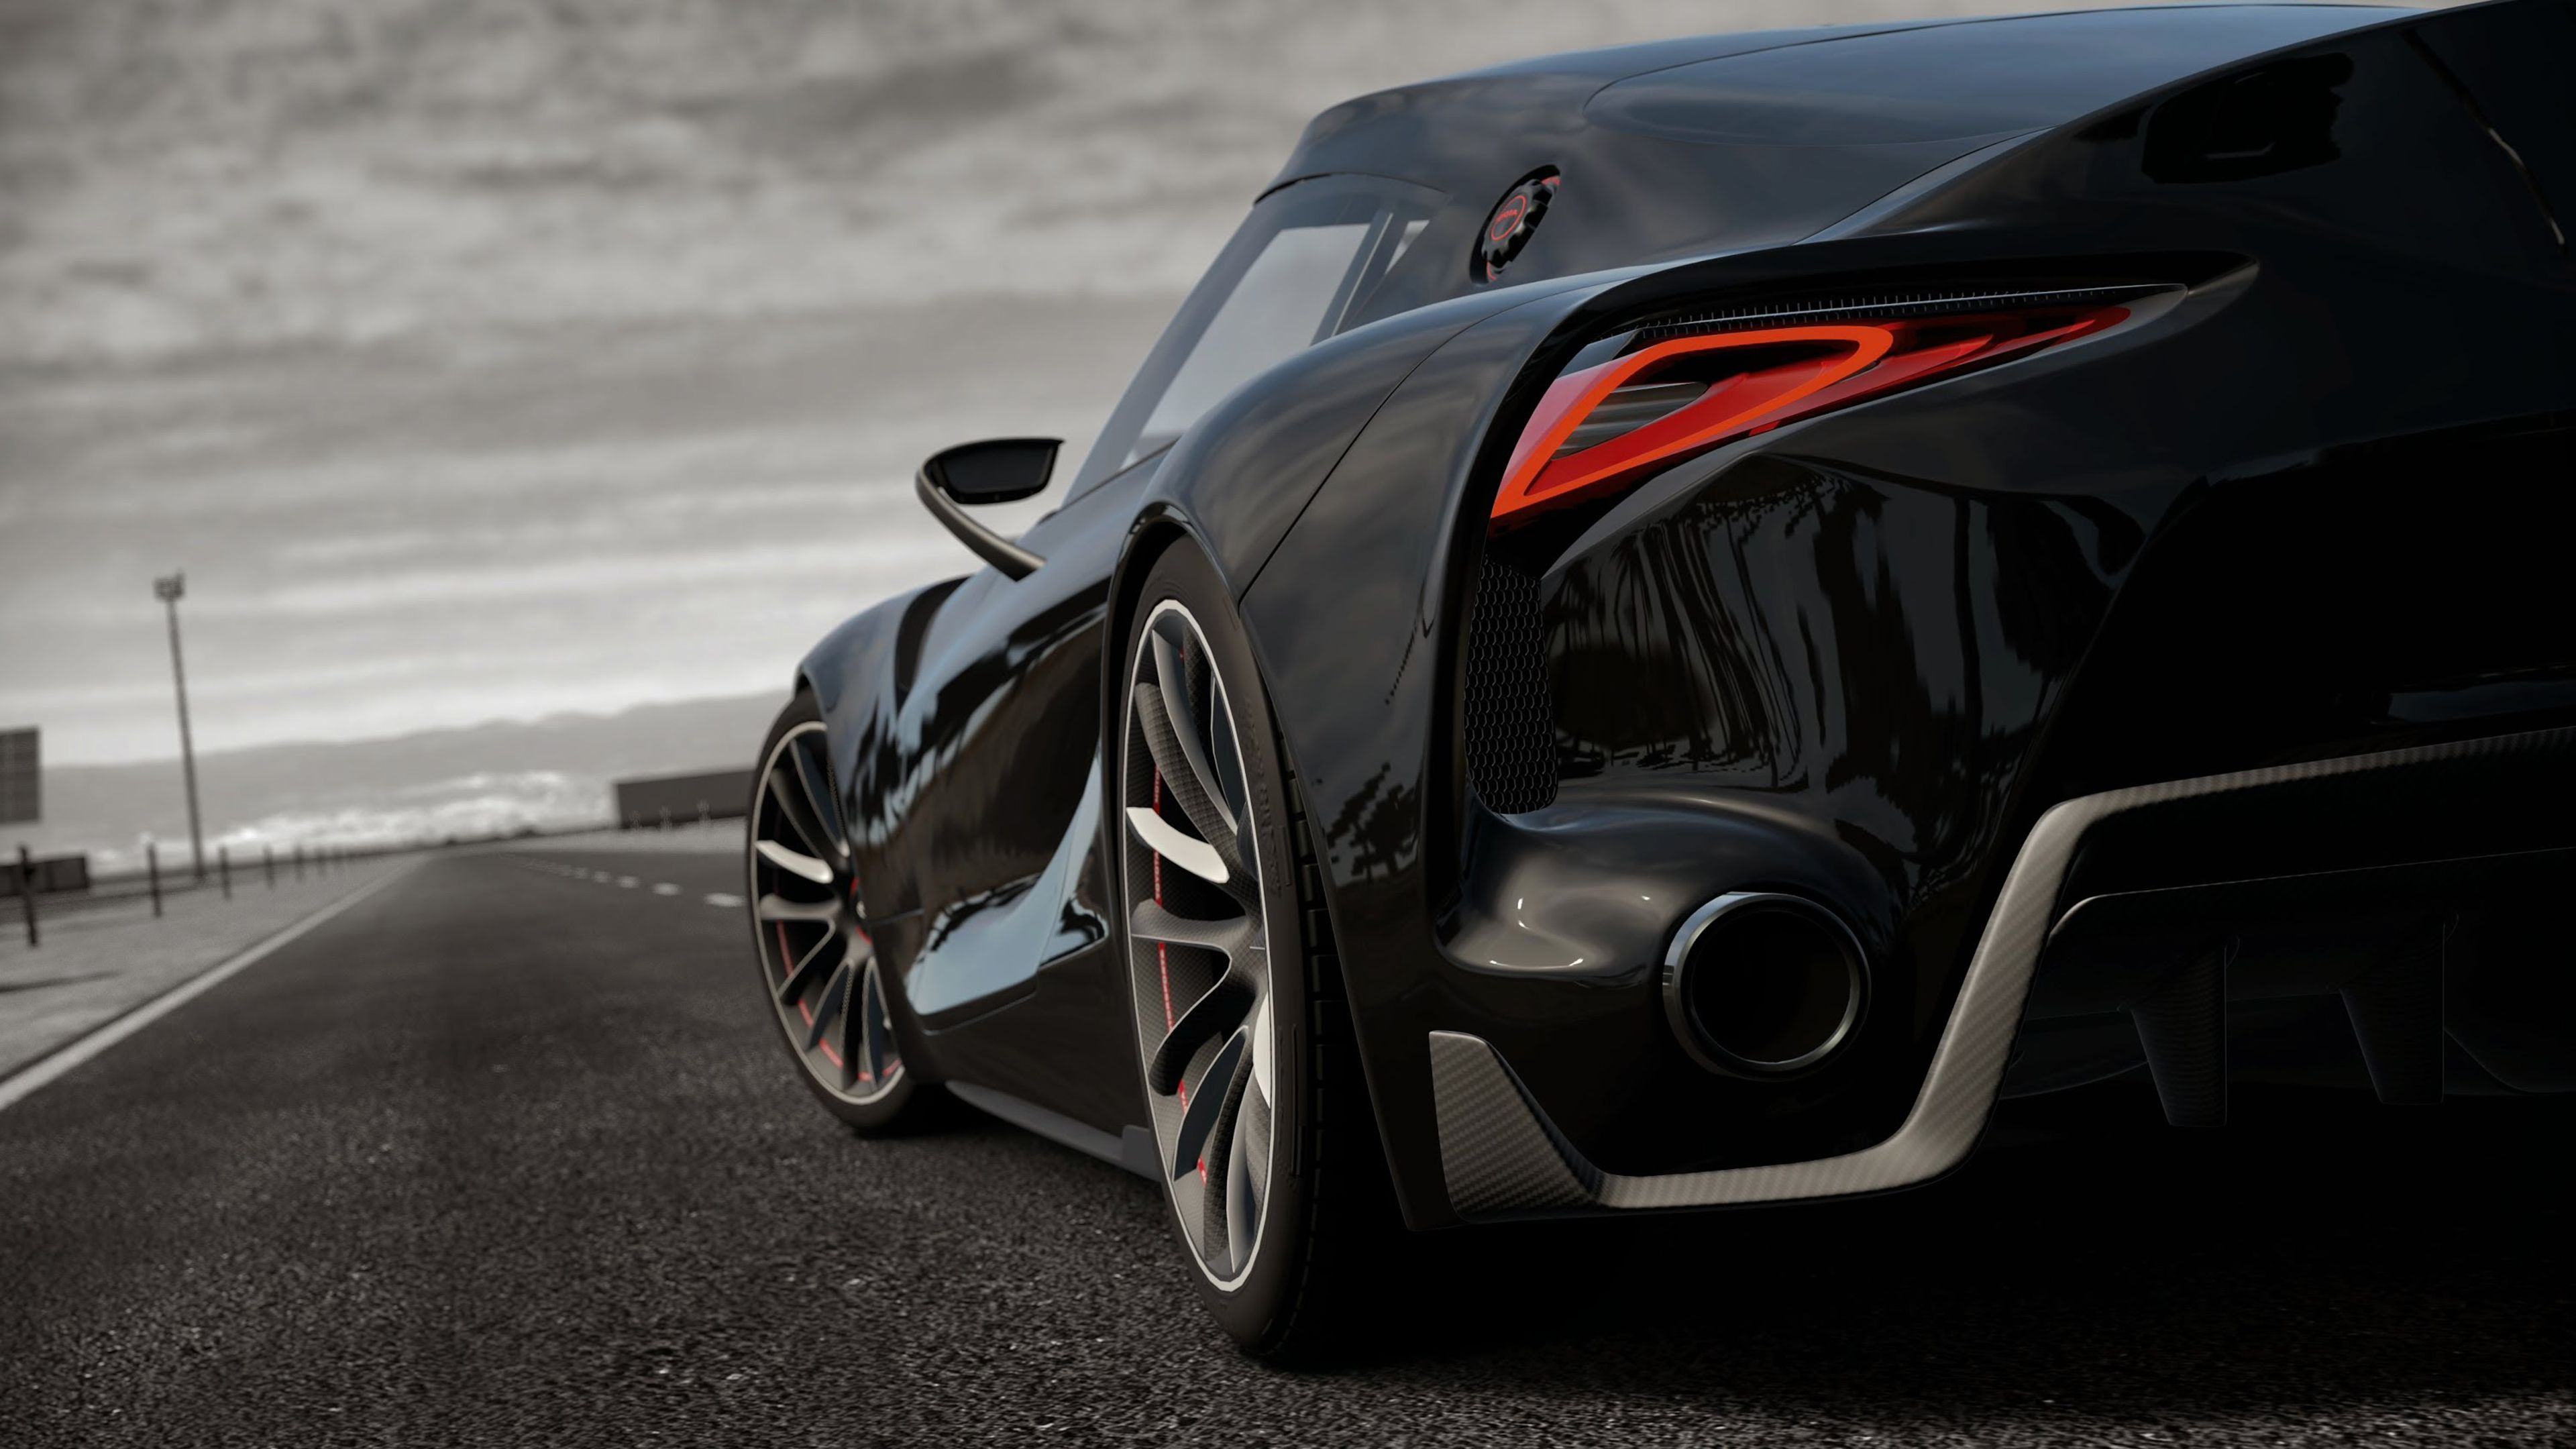 Cool Black Toyota Ft 1 Cars Pinterest Toyota Cars And Super Cars